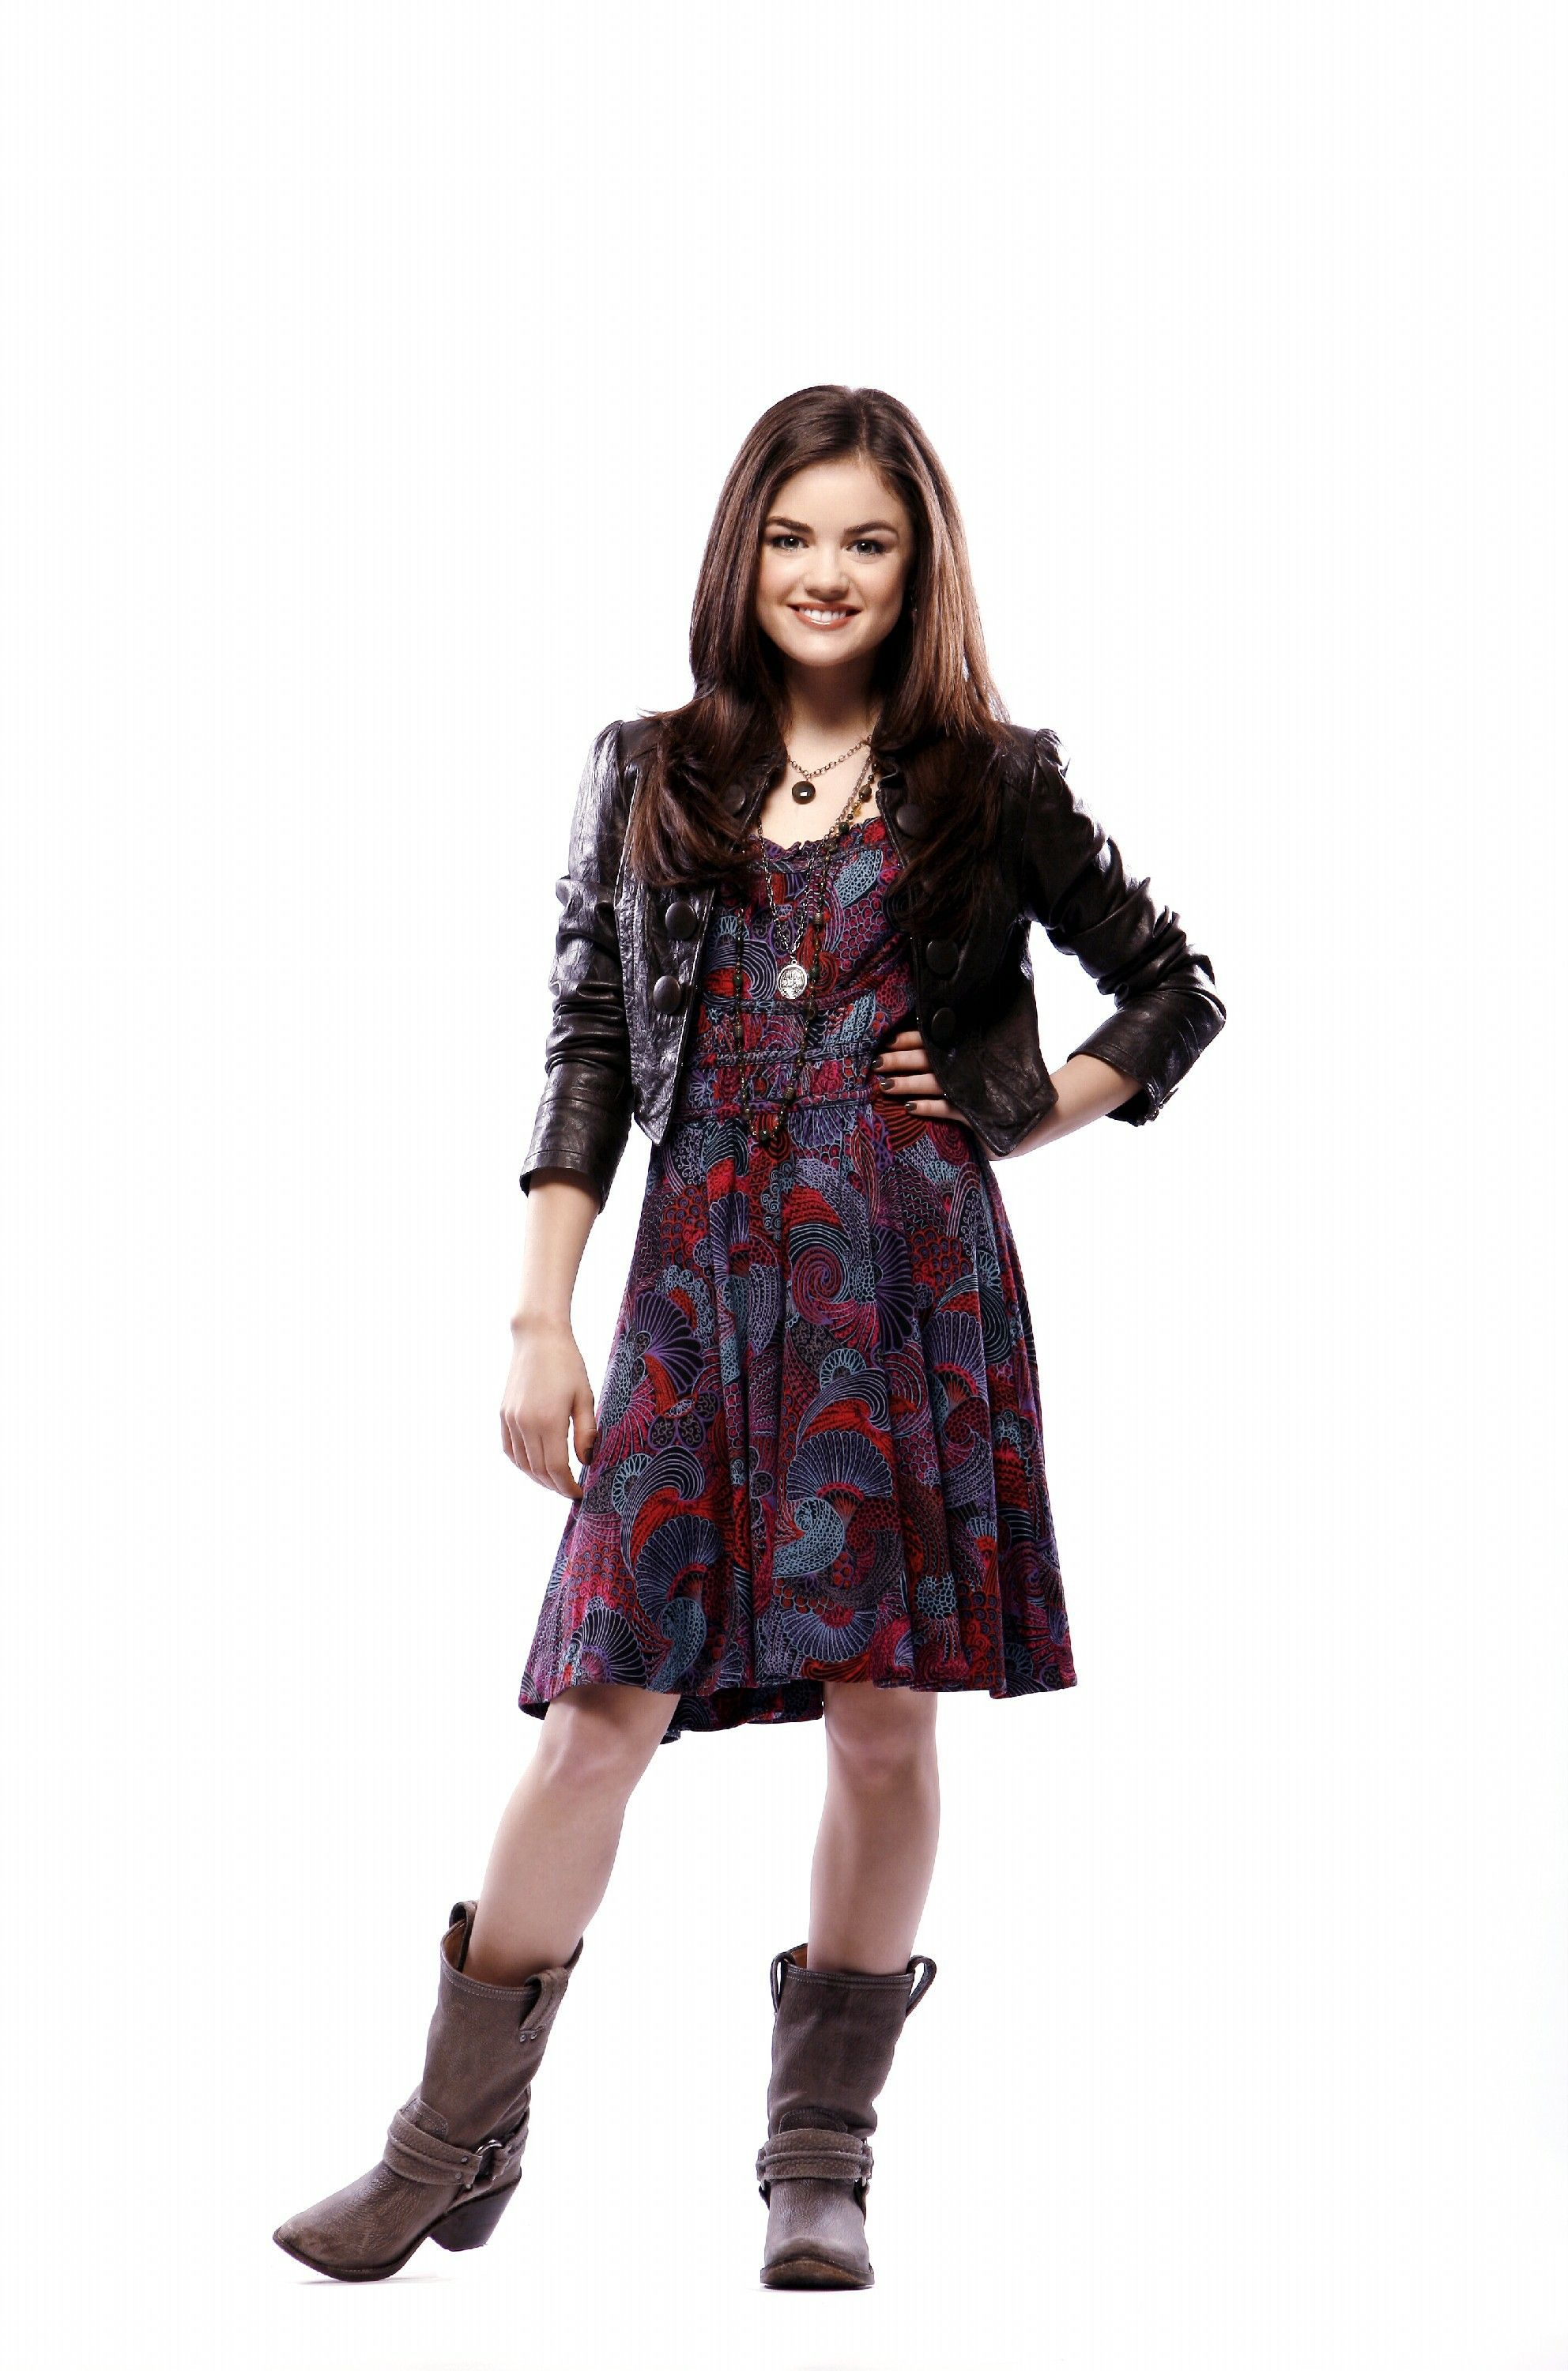 images about Lucy Hale on We Heart It See more about lucy